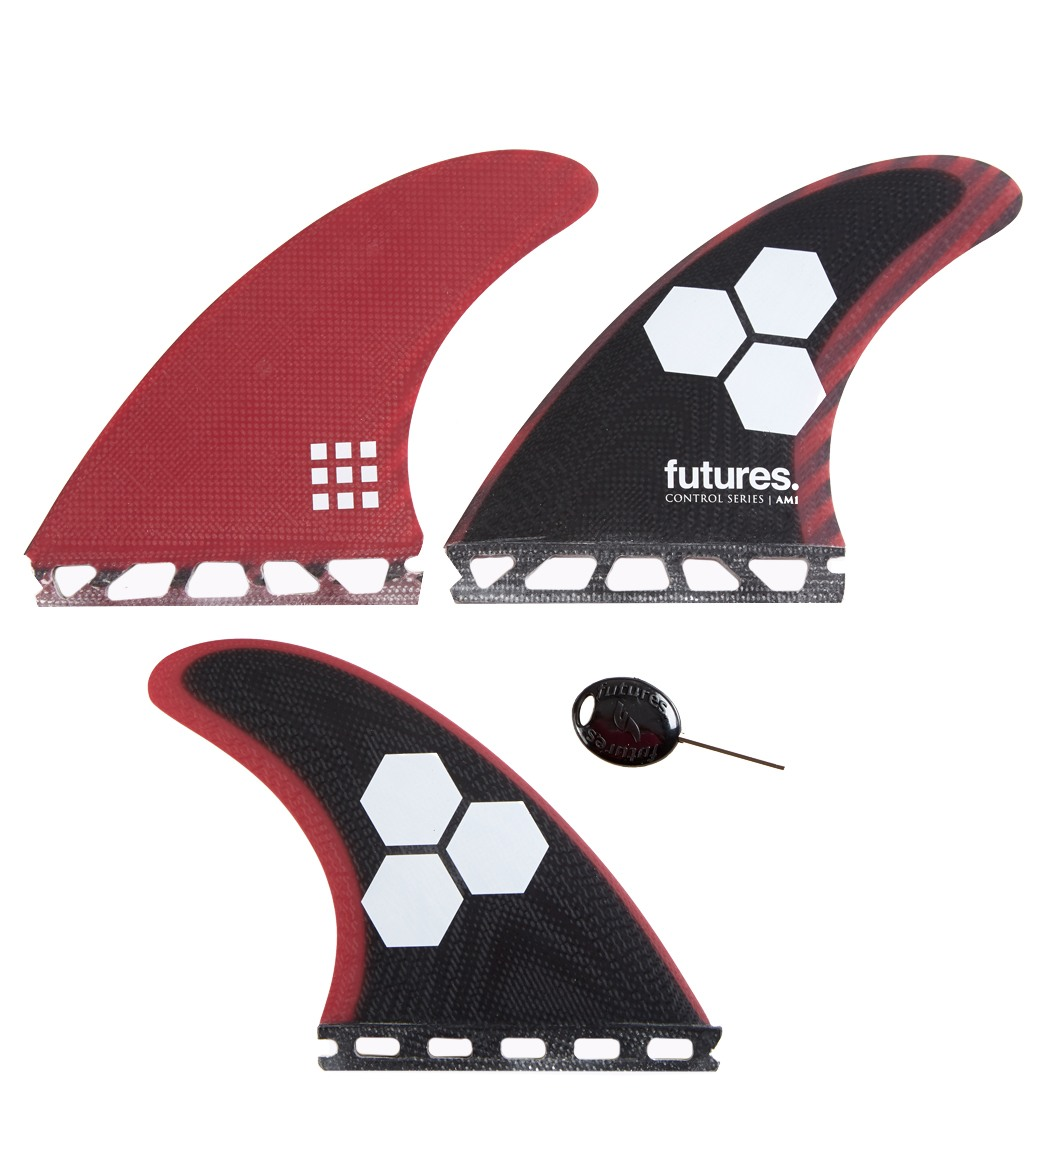 8ecf38e5be Future Fins Control Series AM1 Thruster Fin Set